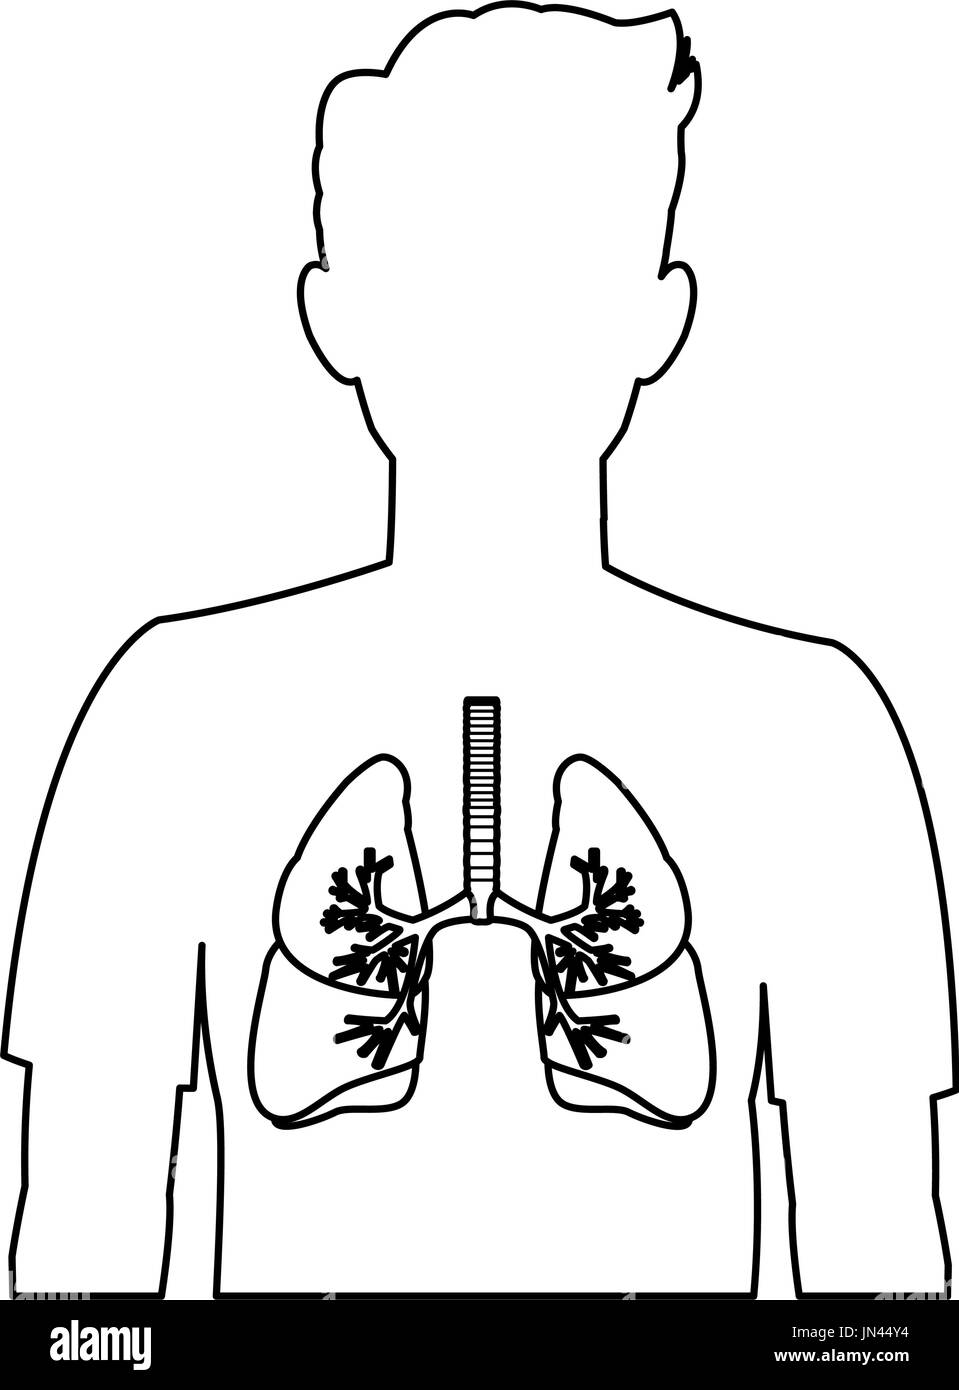 respiratory system black and white stock photos & images - alamy